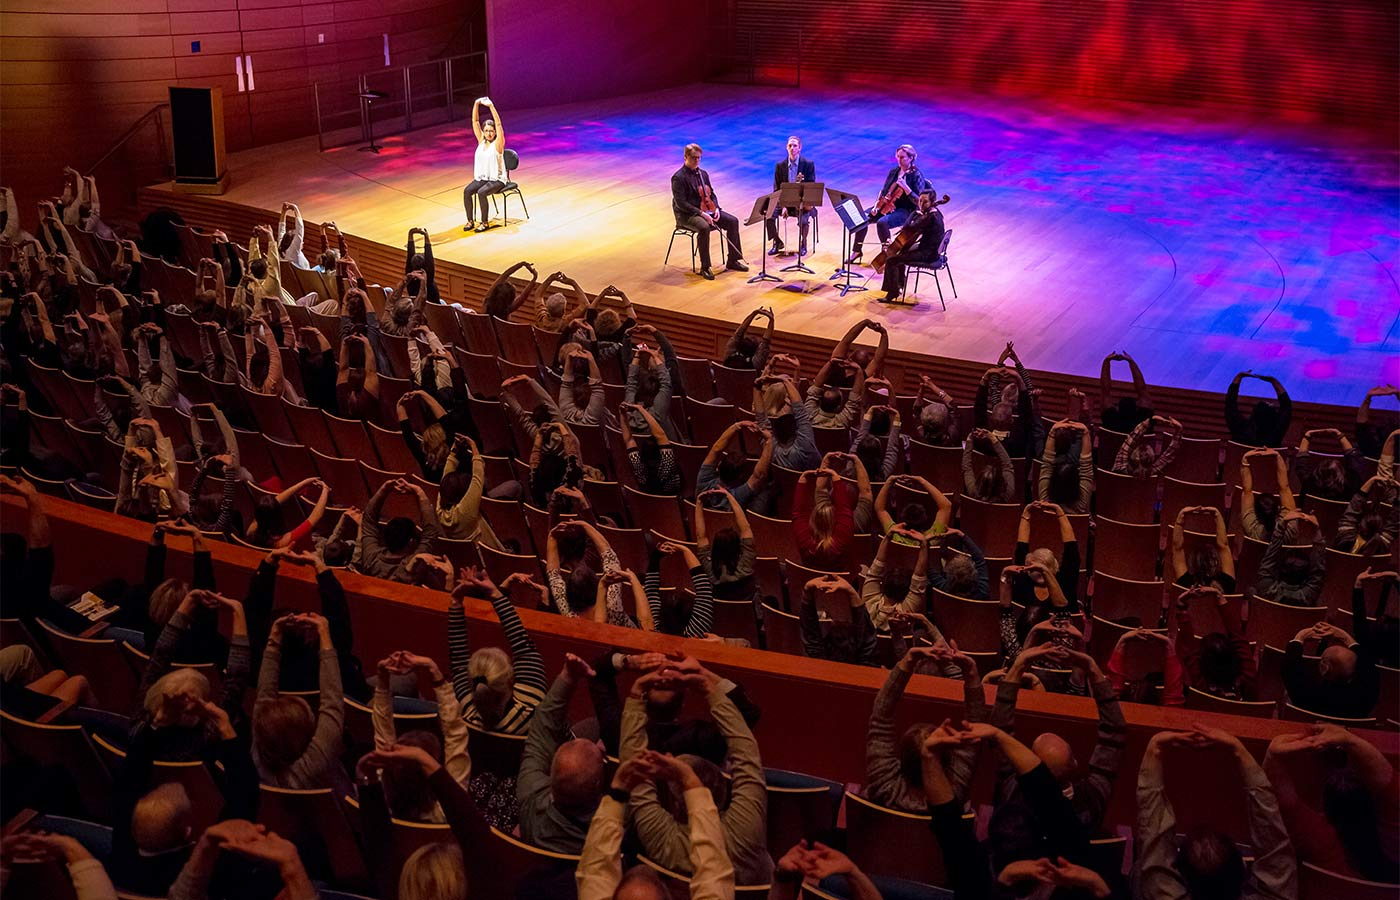 Photo of people participating in a guided meditation event with a string quartet. In Helzberg Hall at Kauffman Center for the Performing Arts